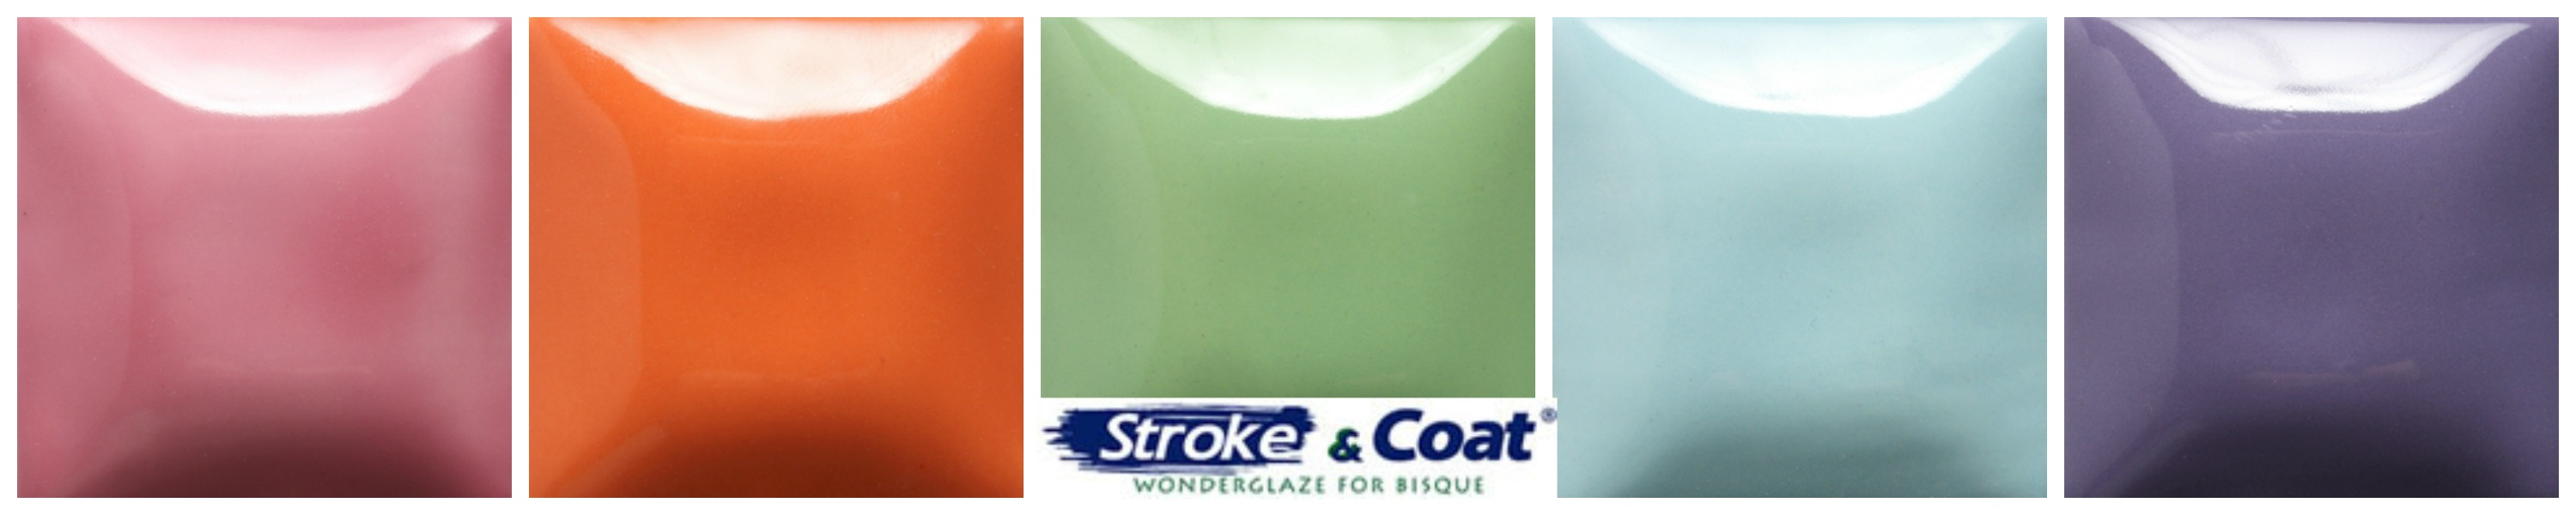 Stroke and Coat